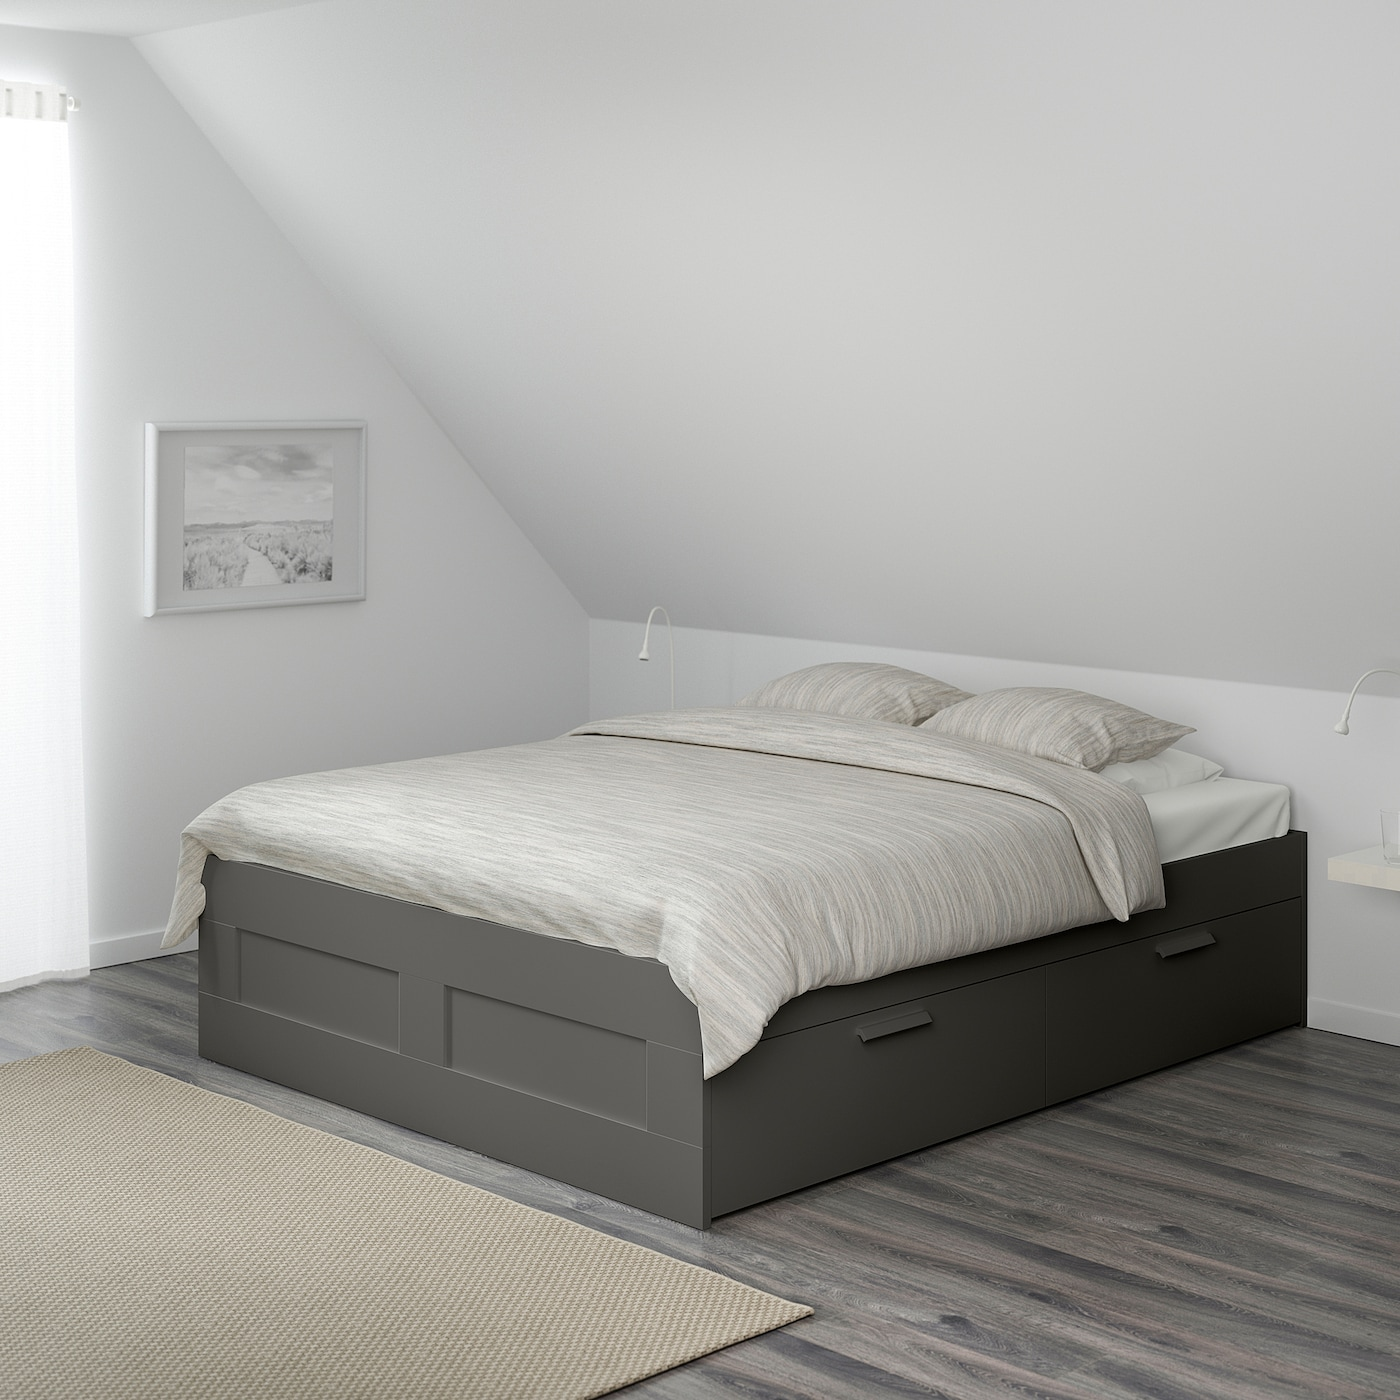 Image of: Brimnes Bed Frame With Storage Gray Full Ikea